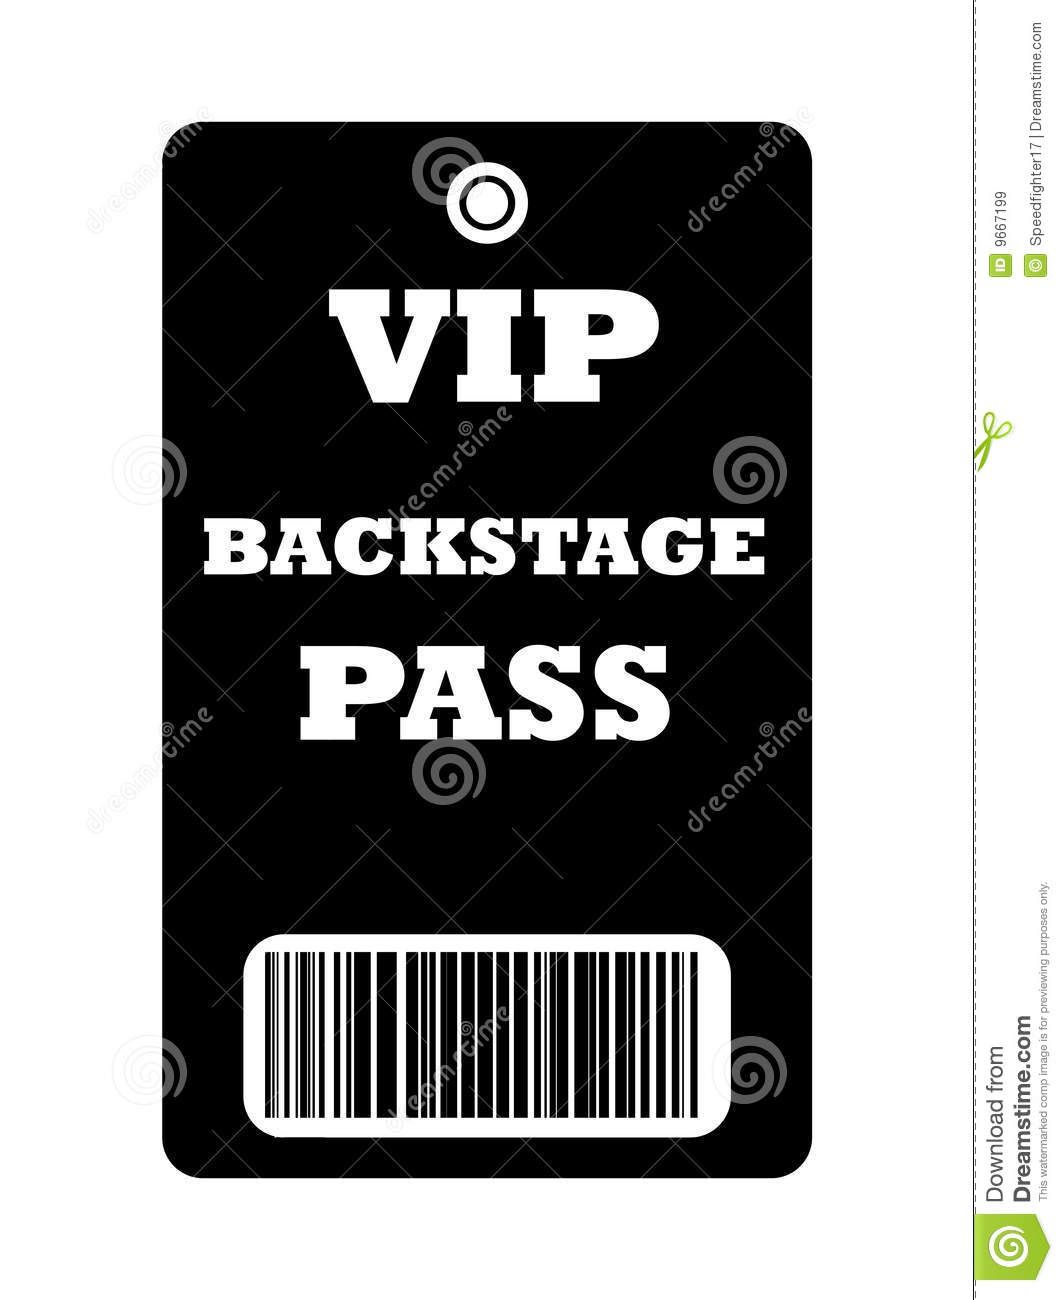 image about Free Printable Vip Pass Template called Graphic outcome for vip backstage p vinyl VIP Vip p